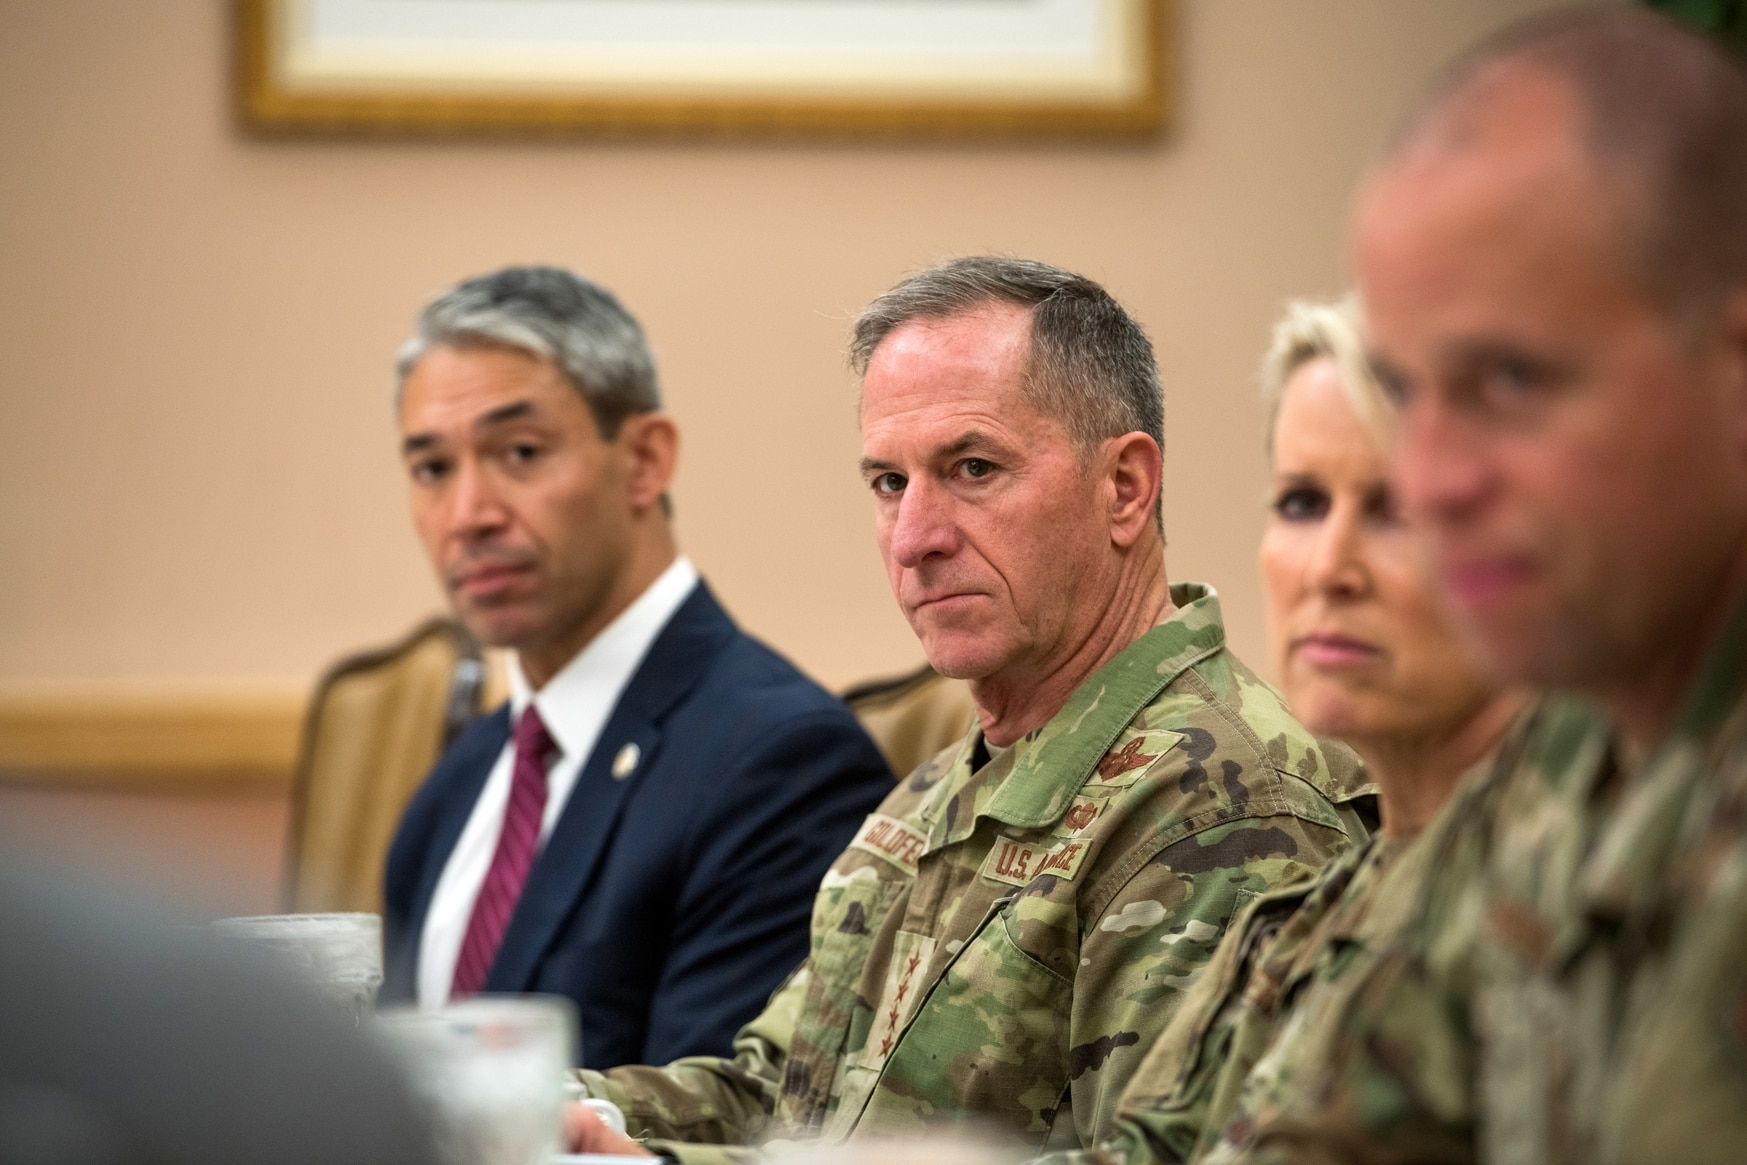 The contrast between the future that former Gen. Goldfein, center, faced and the one that Gen. Brown must now confront is stark. (Sarayuth Pinthong/U.S. Air Force)